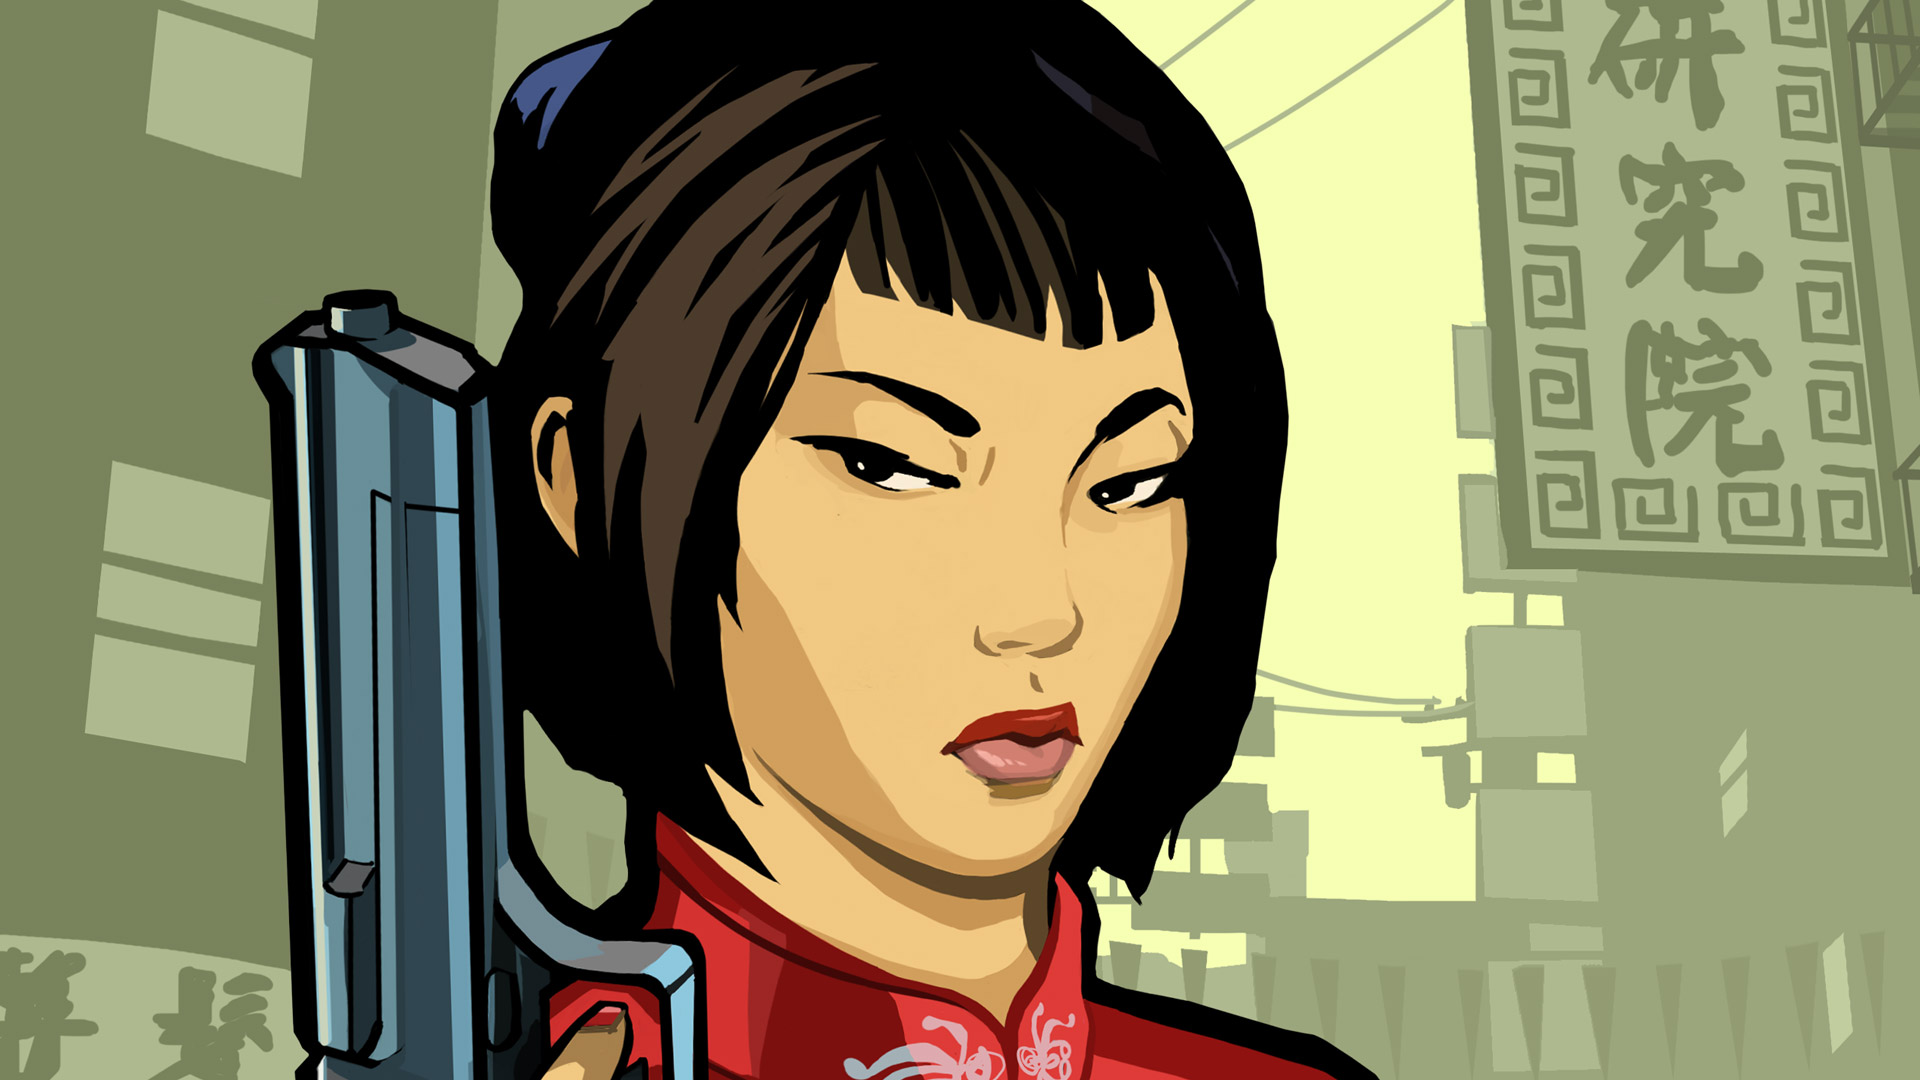 Free Grand Theft Auto: Chinatown Wars Wallpaper in 1920x1080